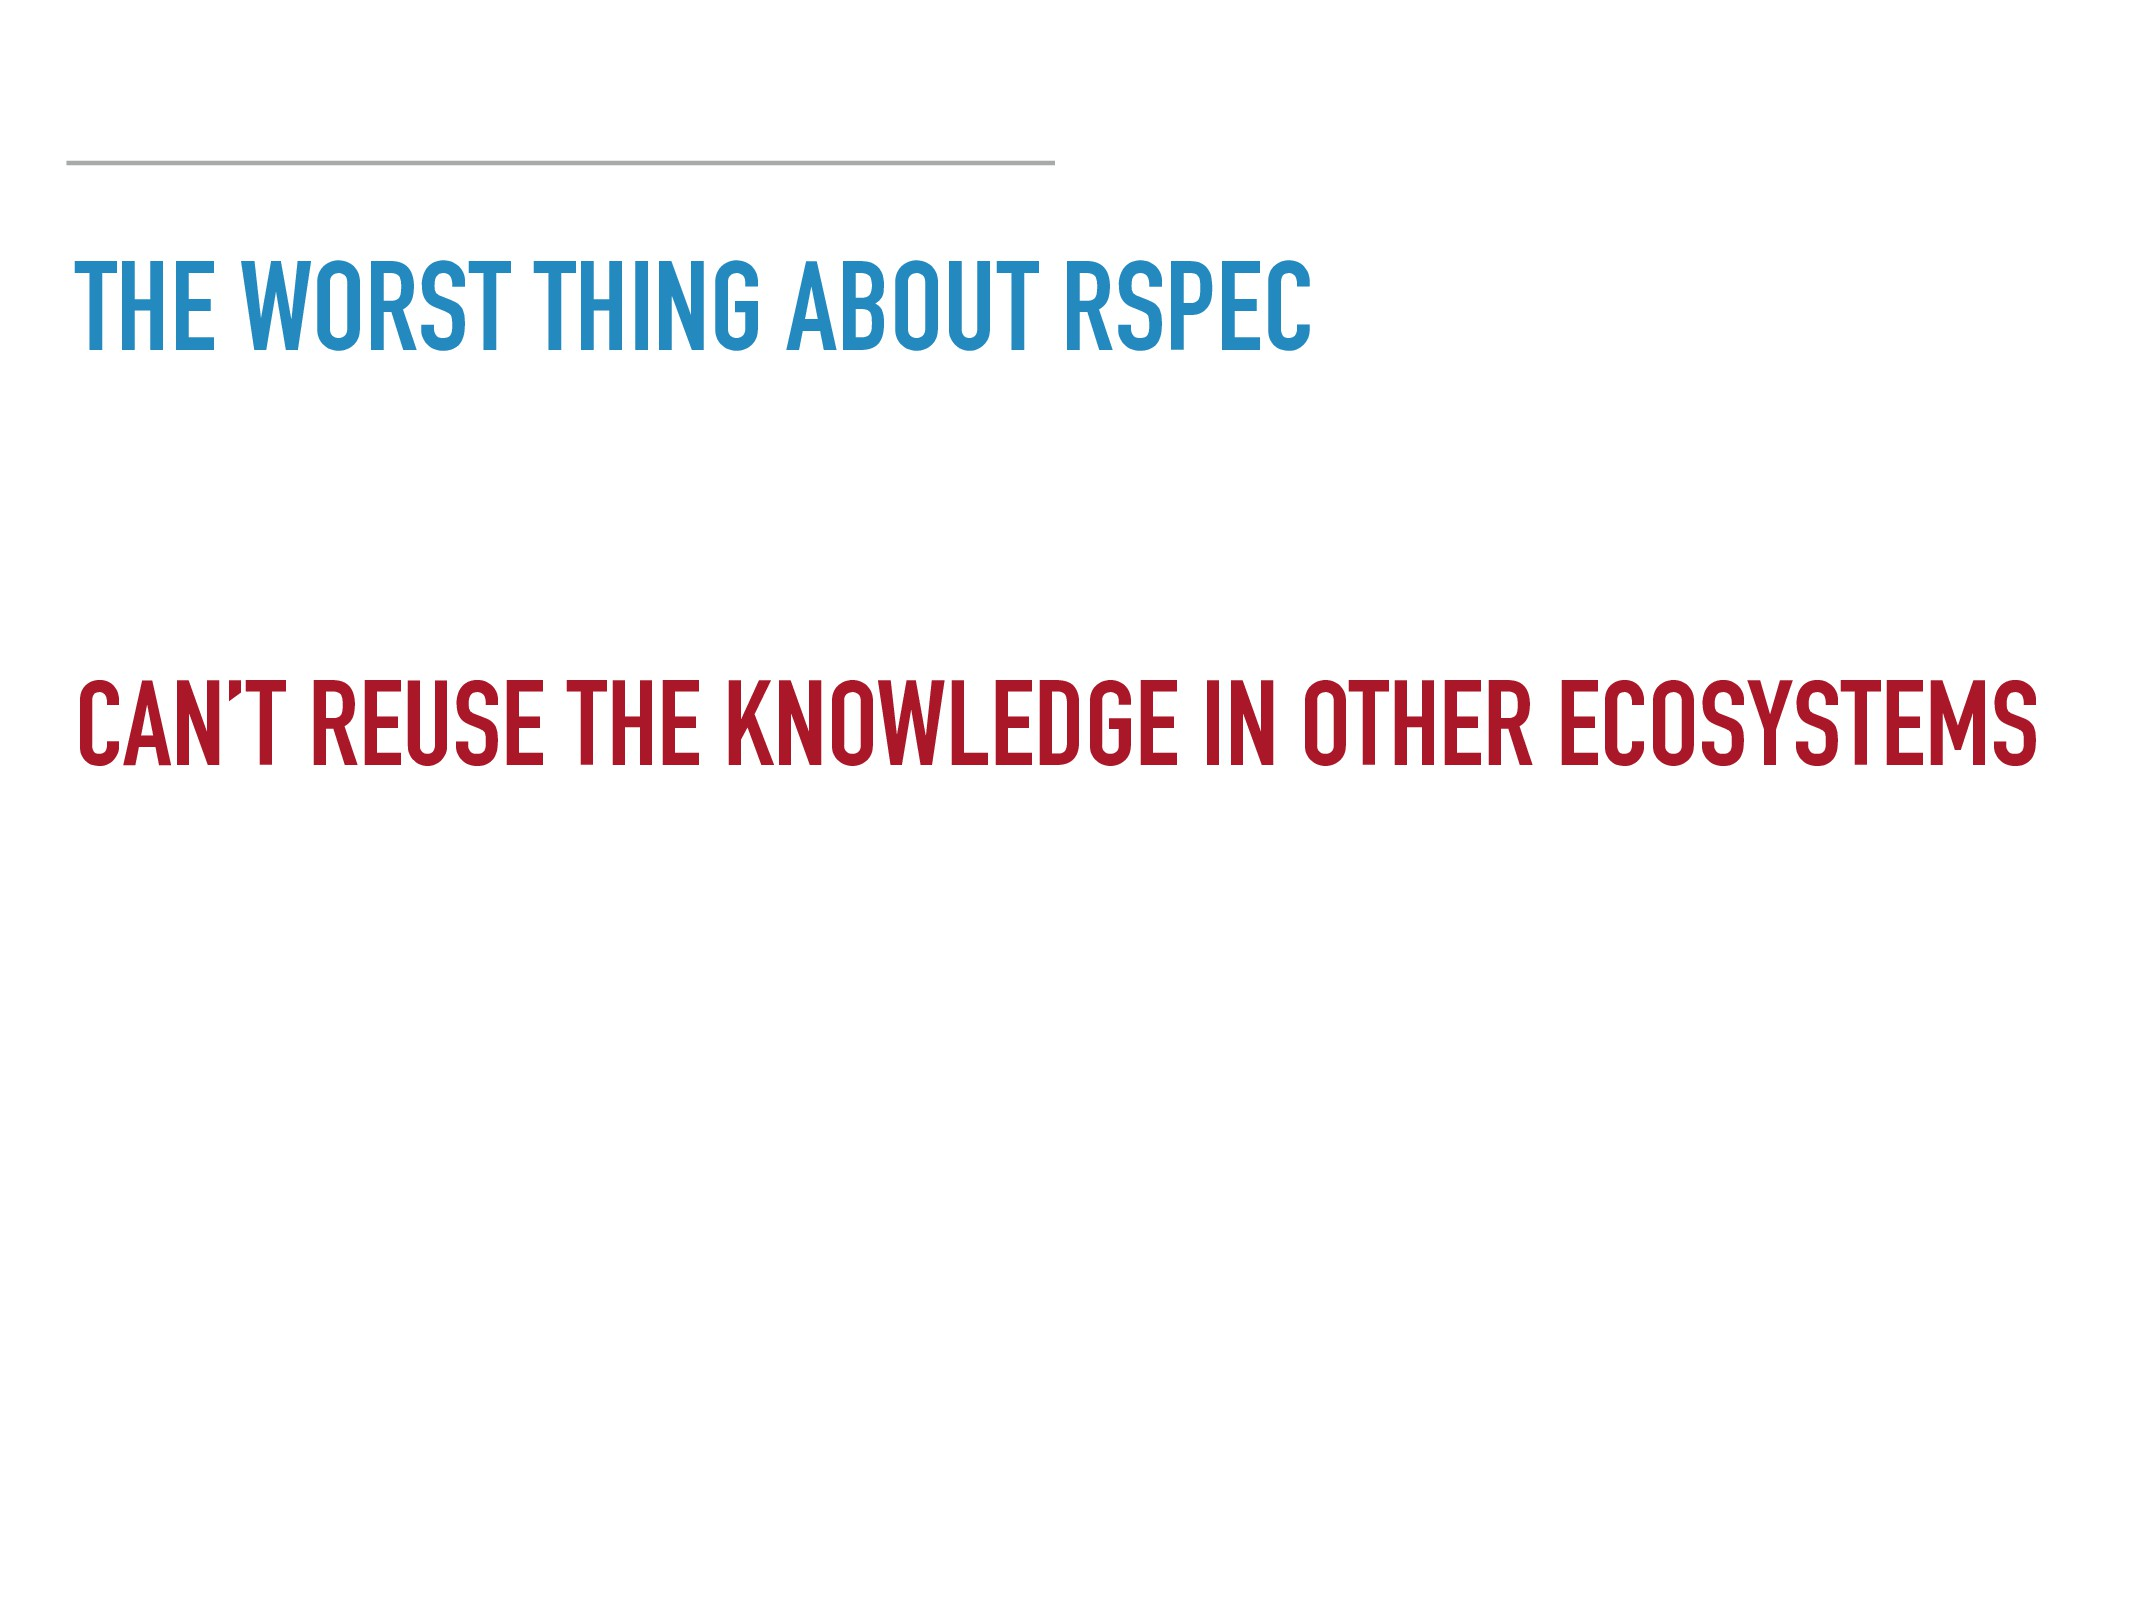 THE WORST THING ABOUT RSPEC CAN'T REUSE THE KNO...